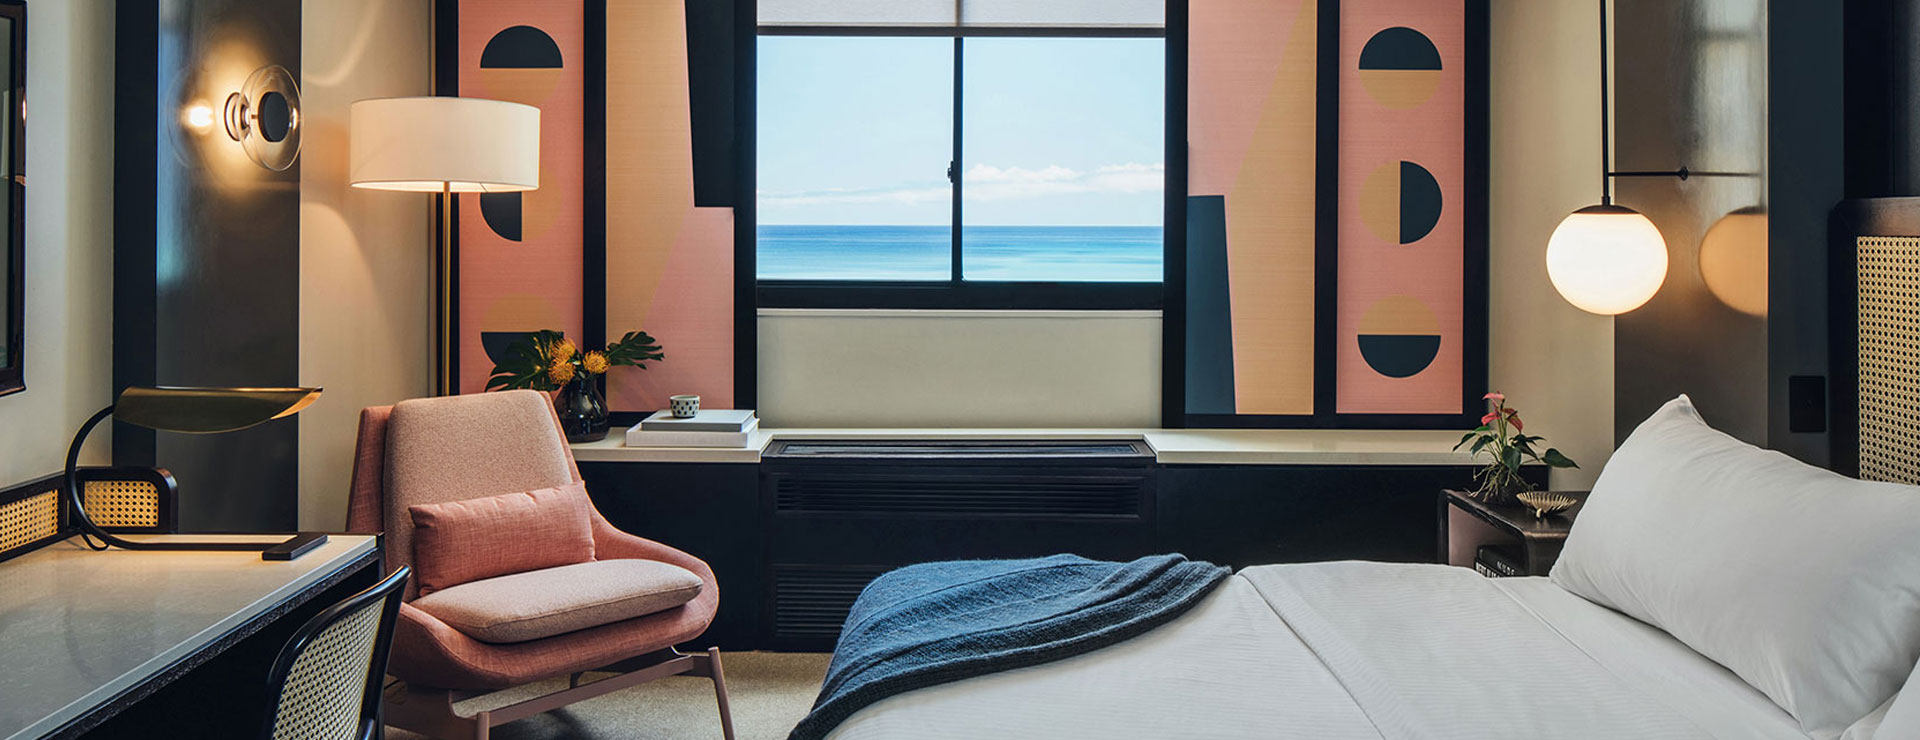 guest room with pink chair and pink window shades